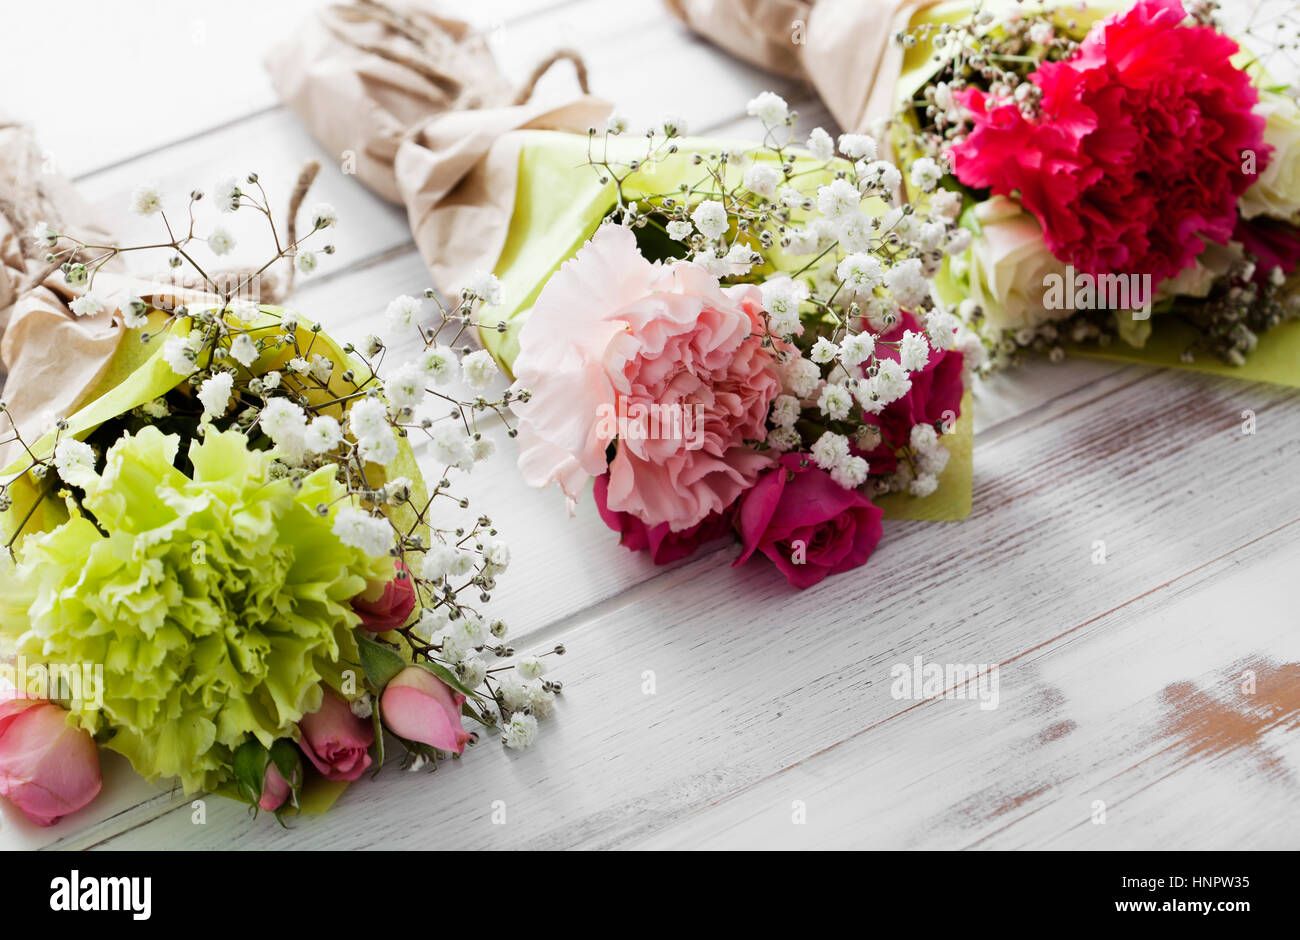 Mini Flower Bouquet Roses Carnation Stock Photos & Mini Flower ...